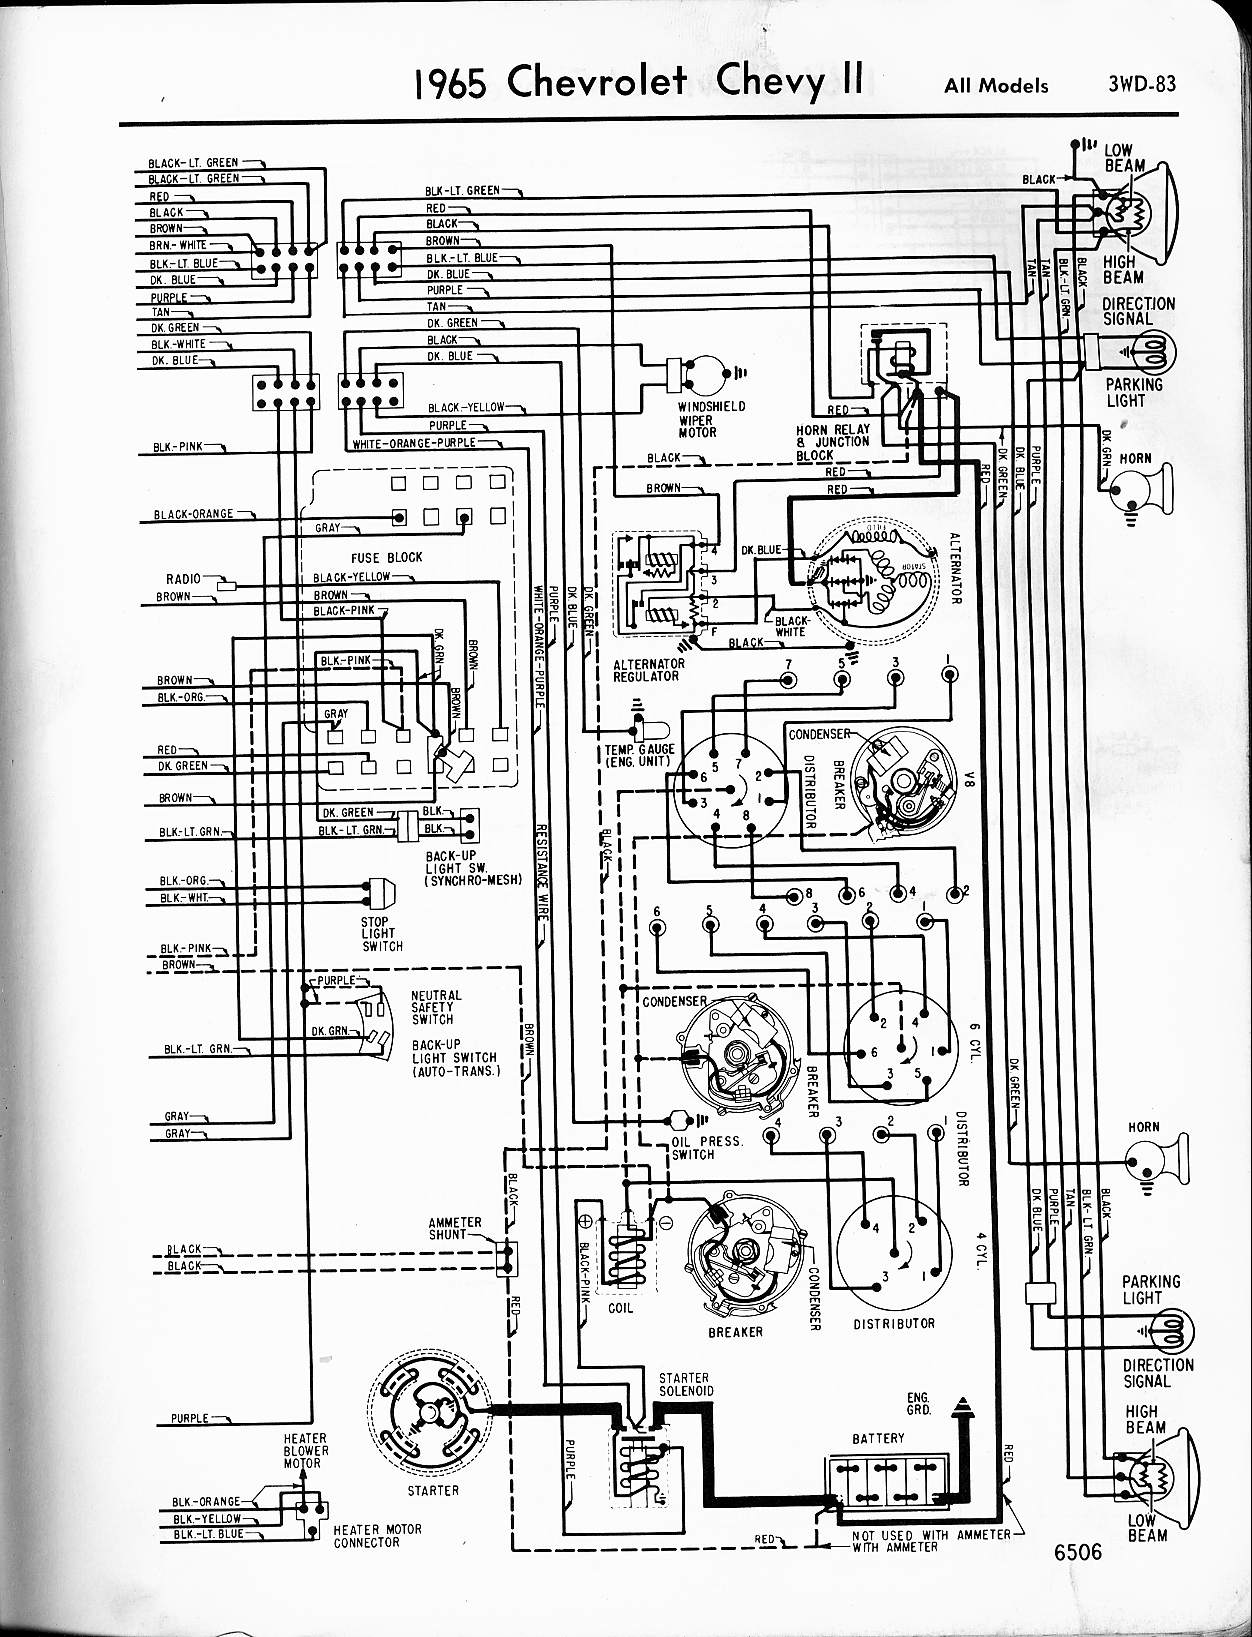 MWireChev65_3WD 083 chevy diagrams 1971 corvette wiring diagram at edmiracle.co